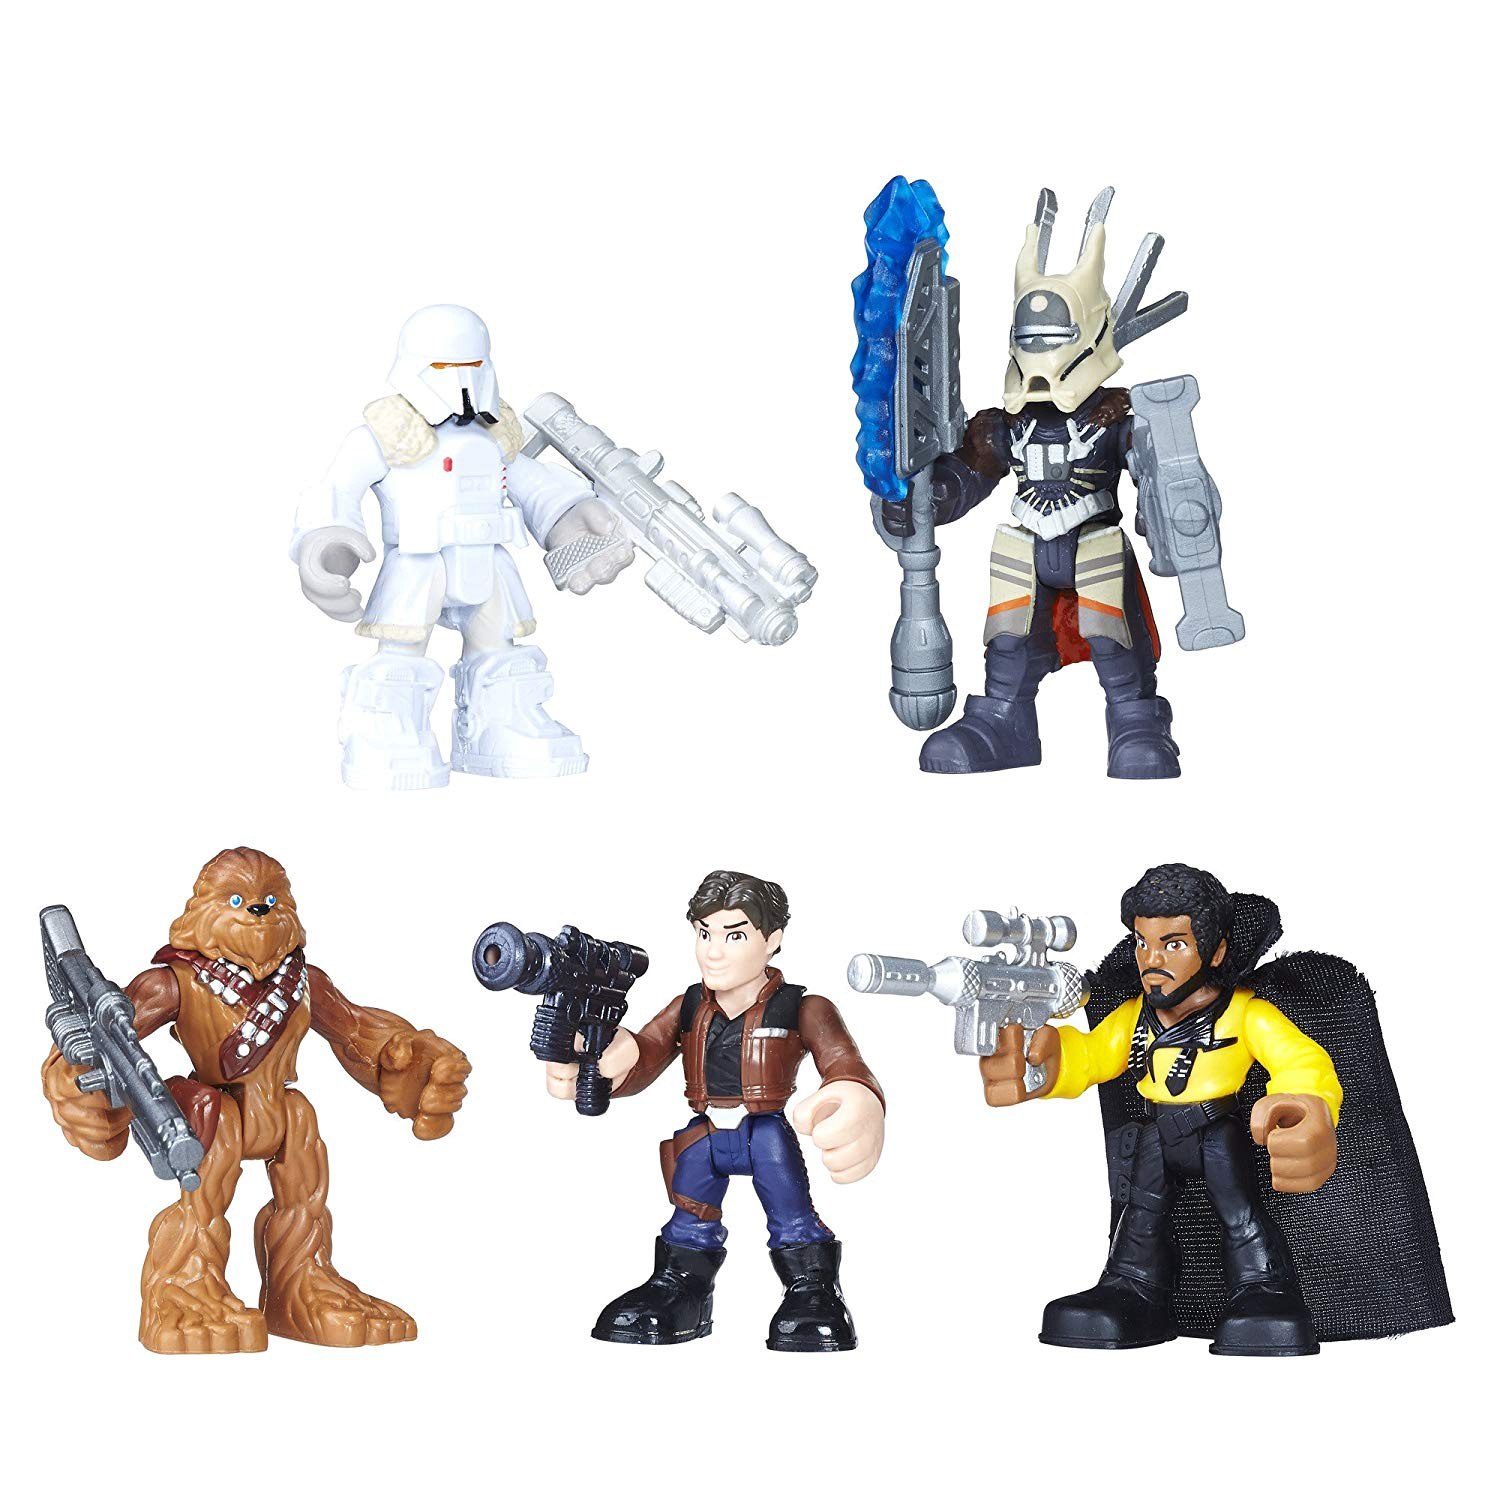 STAR WARS GALACTIC HEROES SMUGGLERS AND SCOUNDRELS